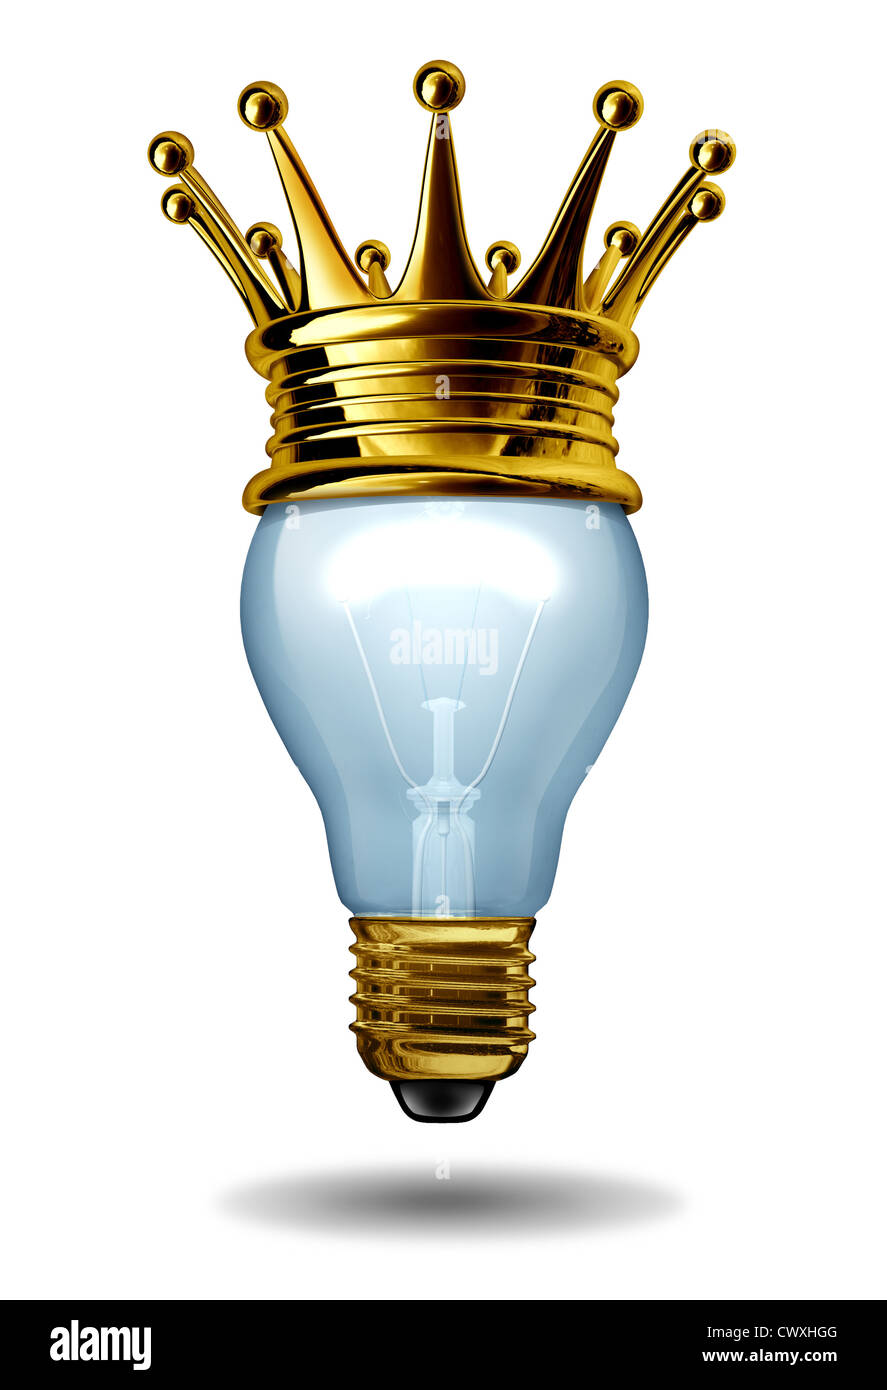 Best Ideas Concept With A Light Bulb And A Gold Crown As An Icon Of Winning  Creativity And Innovation From An Inventing Mind And Design Thinking As A  ...